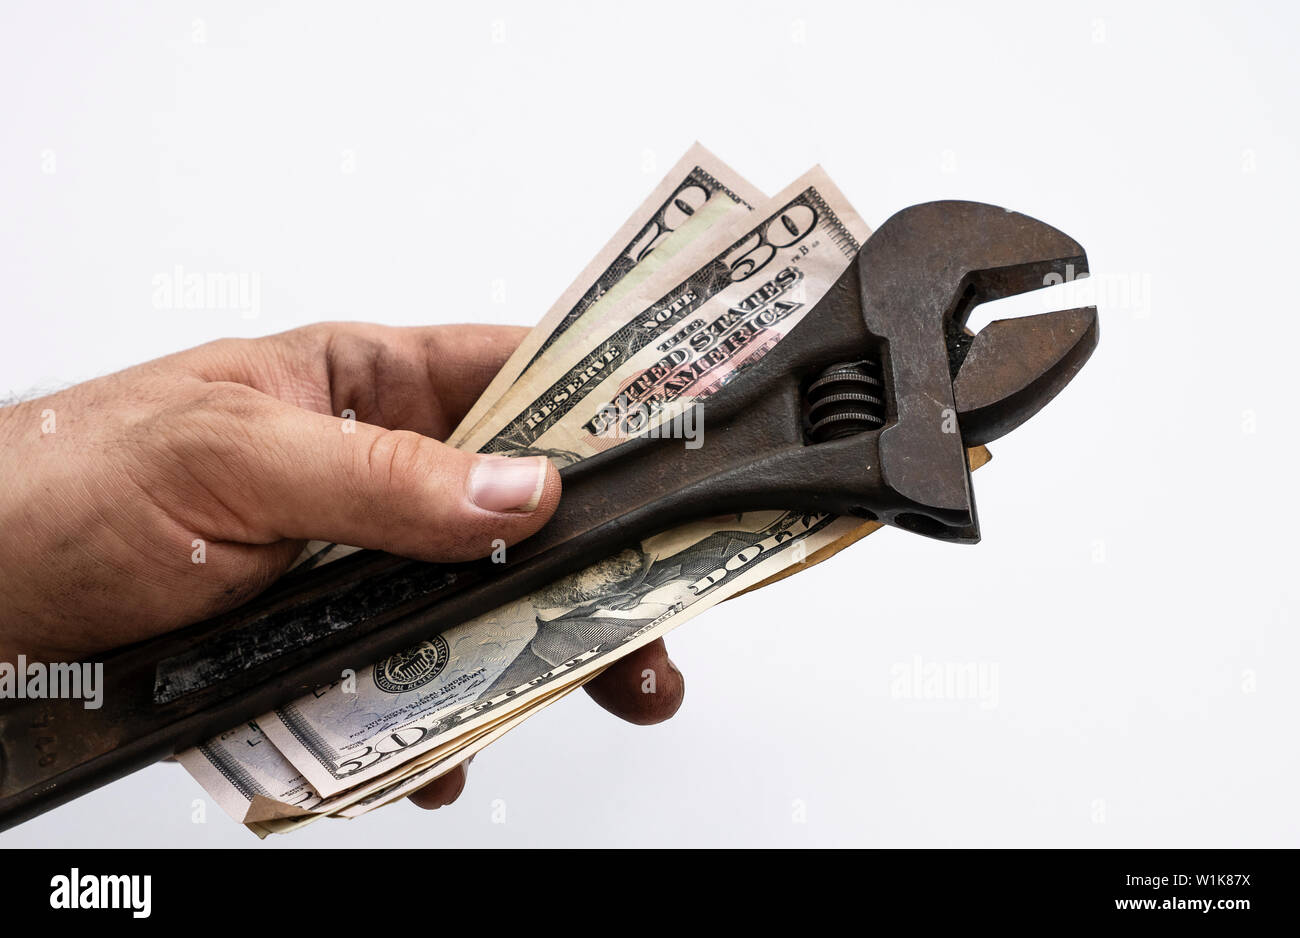 Technician with dirty hands holding wrench and USD bills in his hand Isolate over white background - Stock Image